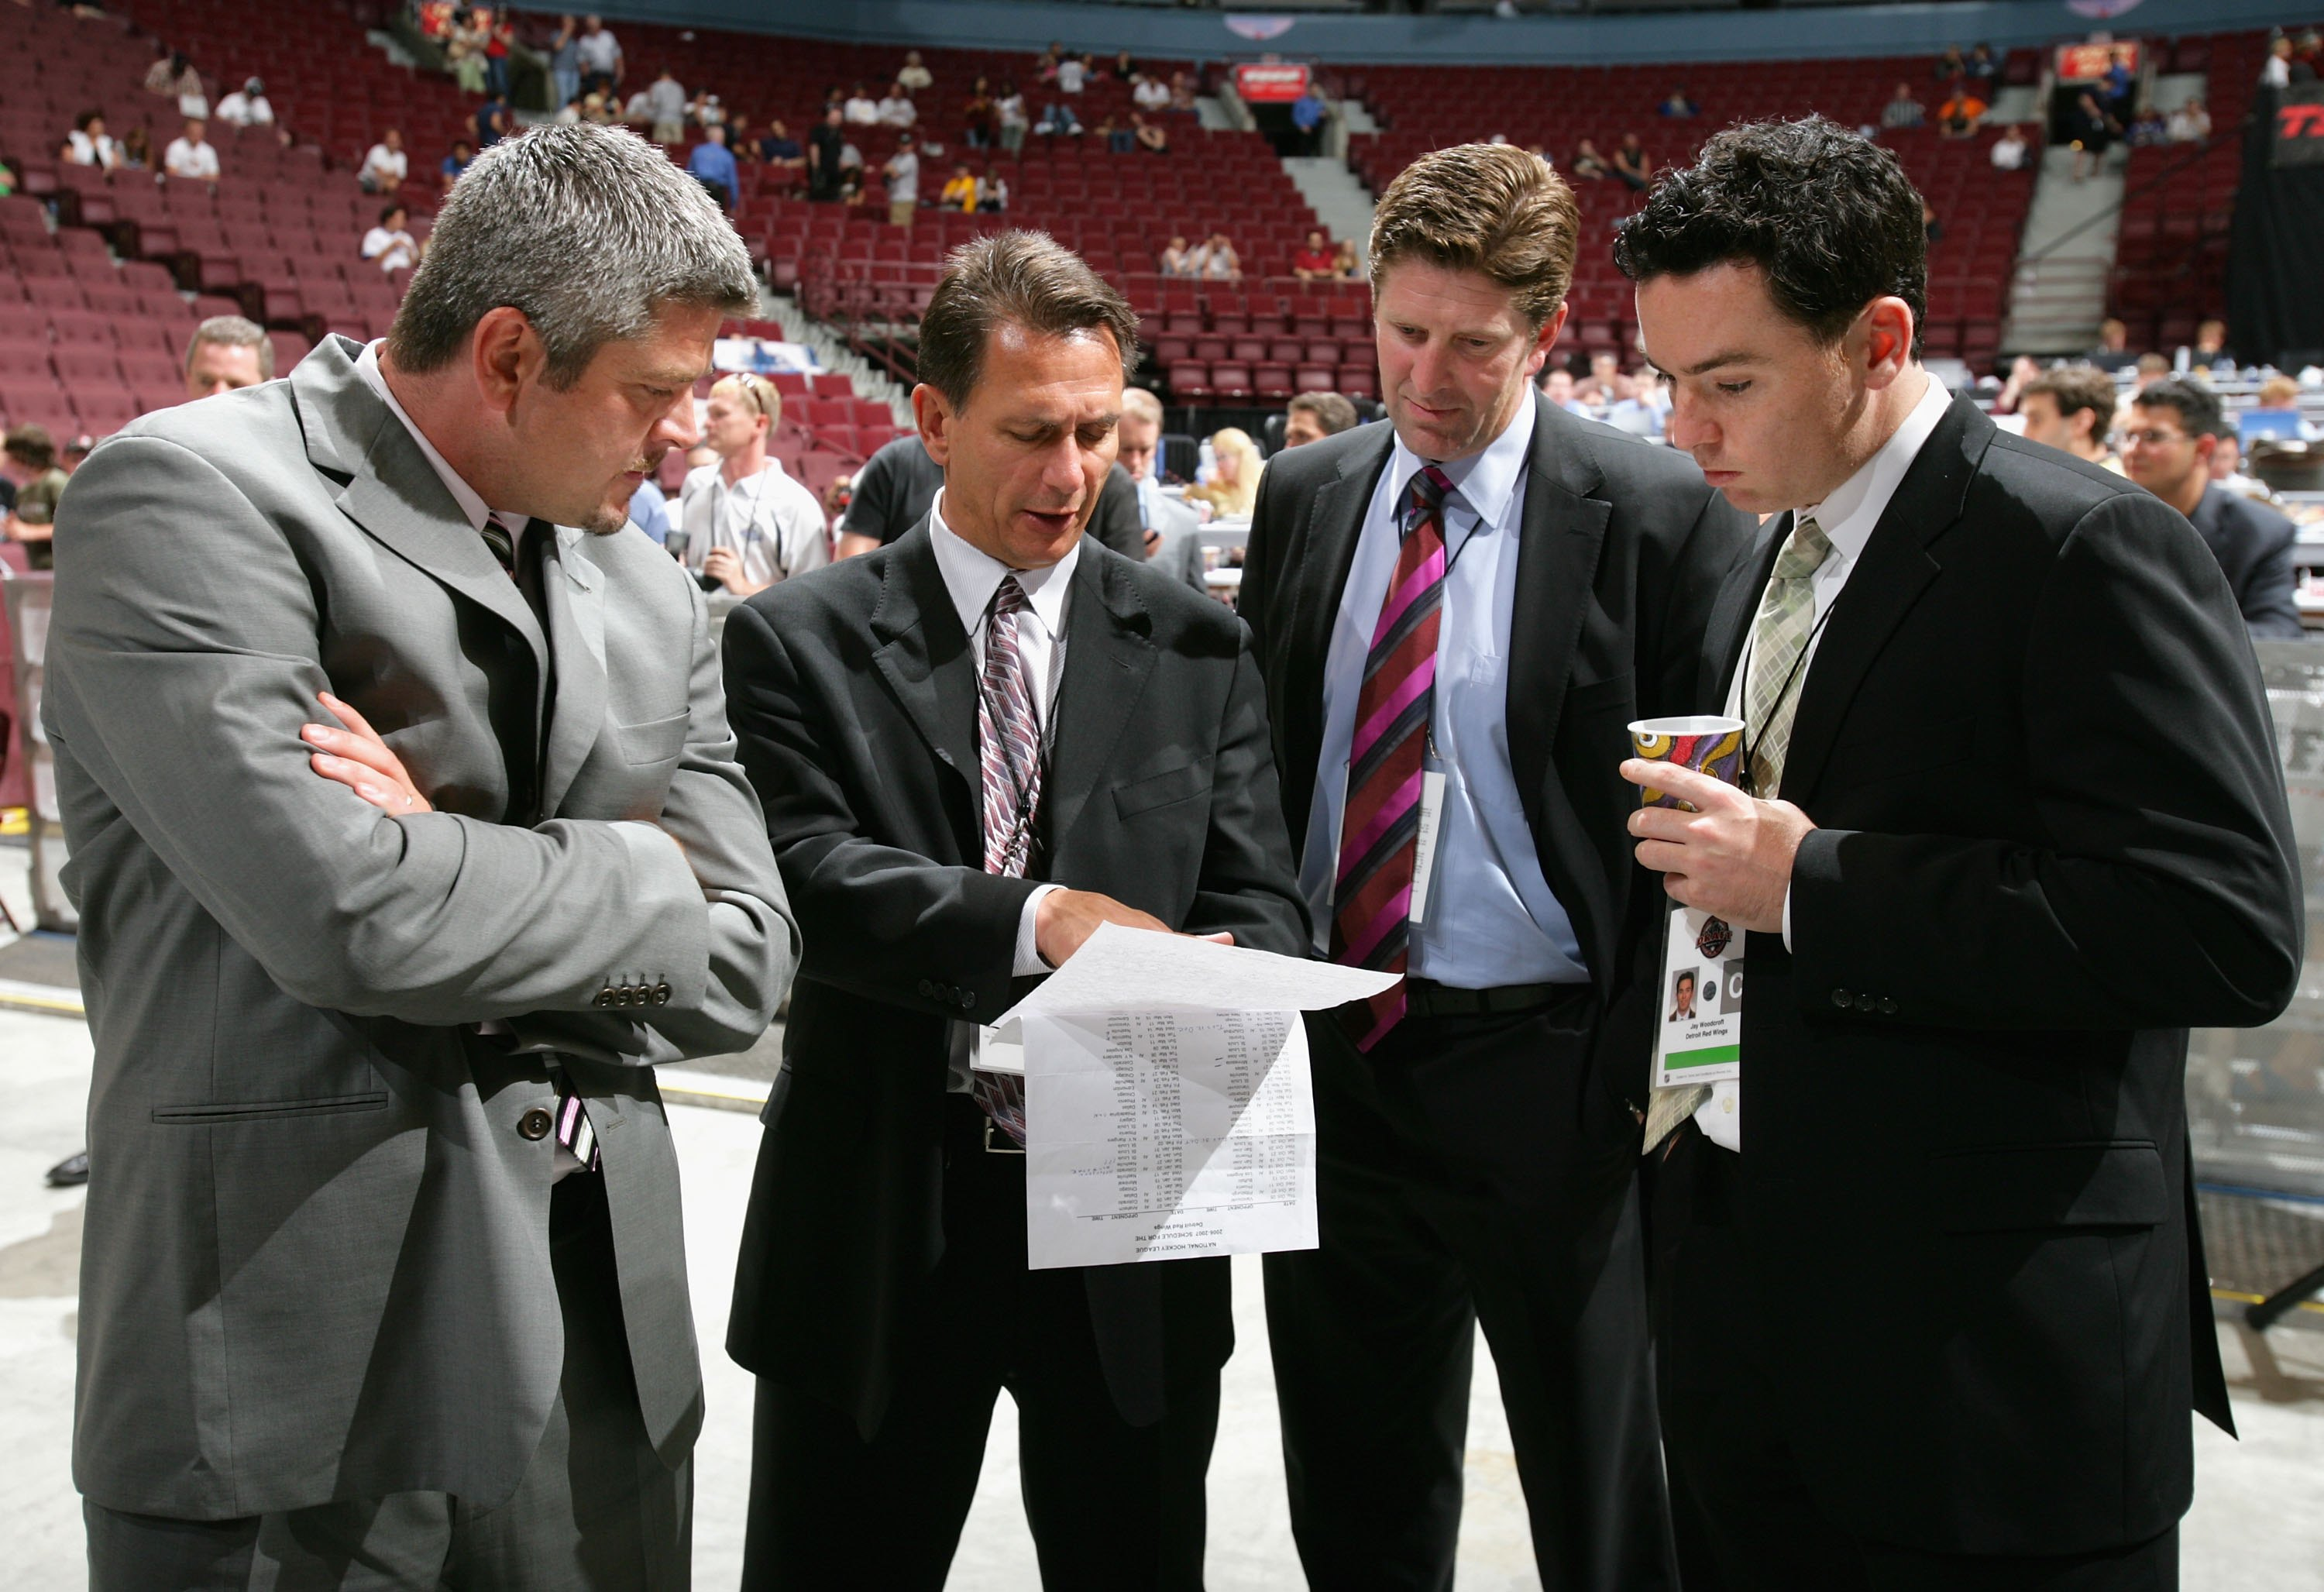 VANCOUVER, BC - JUNE 24:  (L-R) Assistant coach Todd McLellan, general manager Ken Holland, head coach Mike Babcock, and video coach Jay Woodcroft of the Detroit Red Wings convene during the 2006 NHL Draft held at General Motors Place on June 24, 2006 in